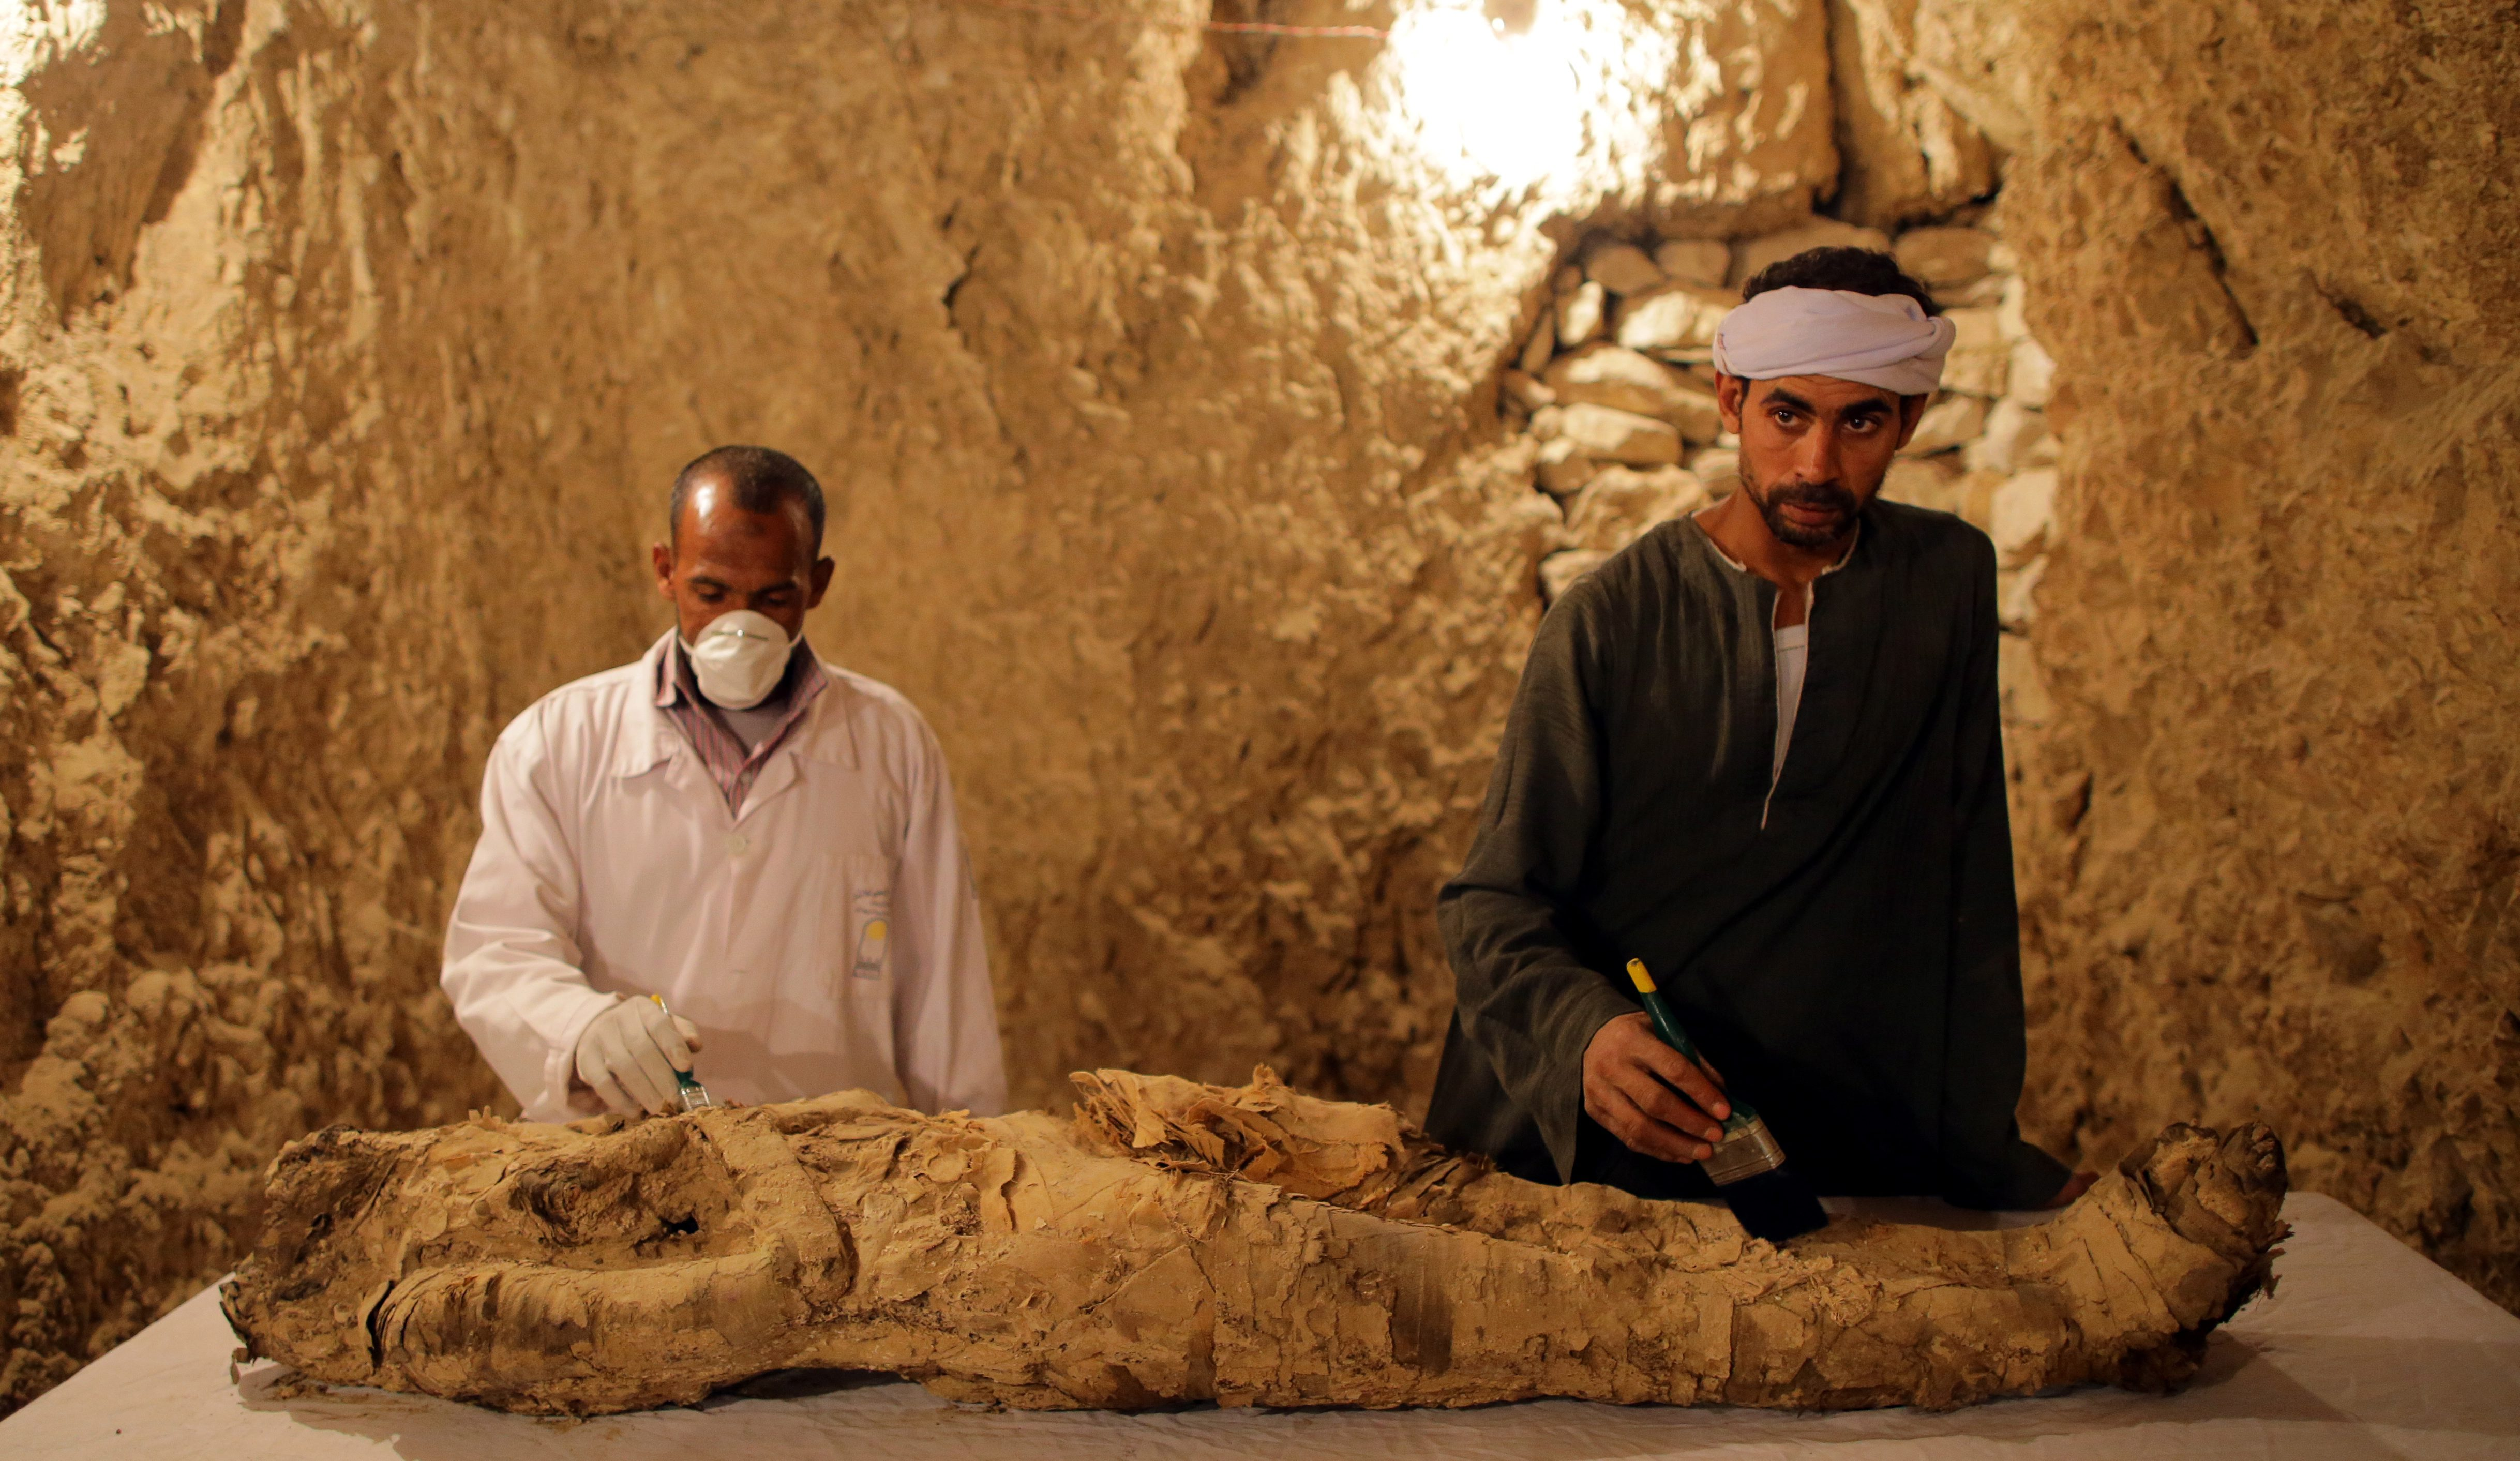 epaselect epa06378795 Egyptians archaeologists work on restoring a mummy at a recently found tomb and re-discovery of an older one, at Draa Abul Naga necropolis on Luxor?s west bank, 700km south of Cairo, Egypt, 09 December 2017. Egypt's Ministry of Antiquities announced the discovery of a tomb from the New Kingdom that belongs to the old Egyptian deity Amun's Goldsmith, Amenemhat (tomb number Kampp 390) and a burial shaft housing the mummy of a lady and her two children. The newly discovered tomb includes an entrance located in the courtyard of another Middle Kingdom tomb number Kampp 150.